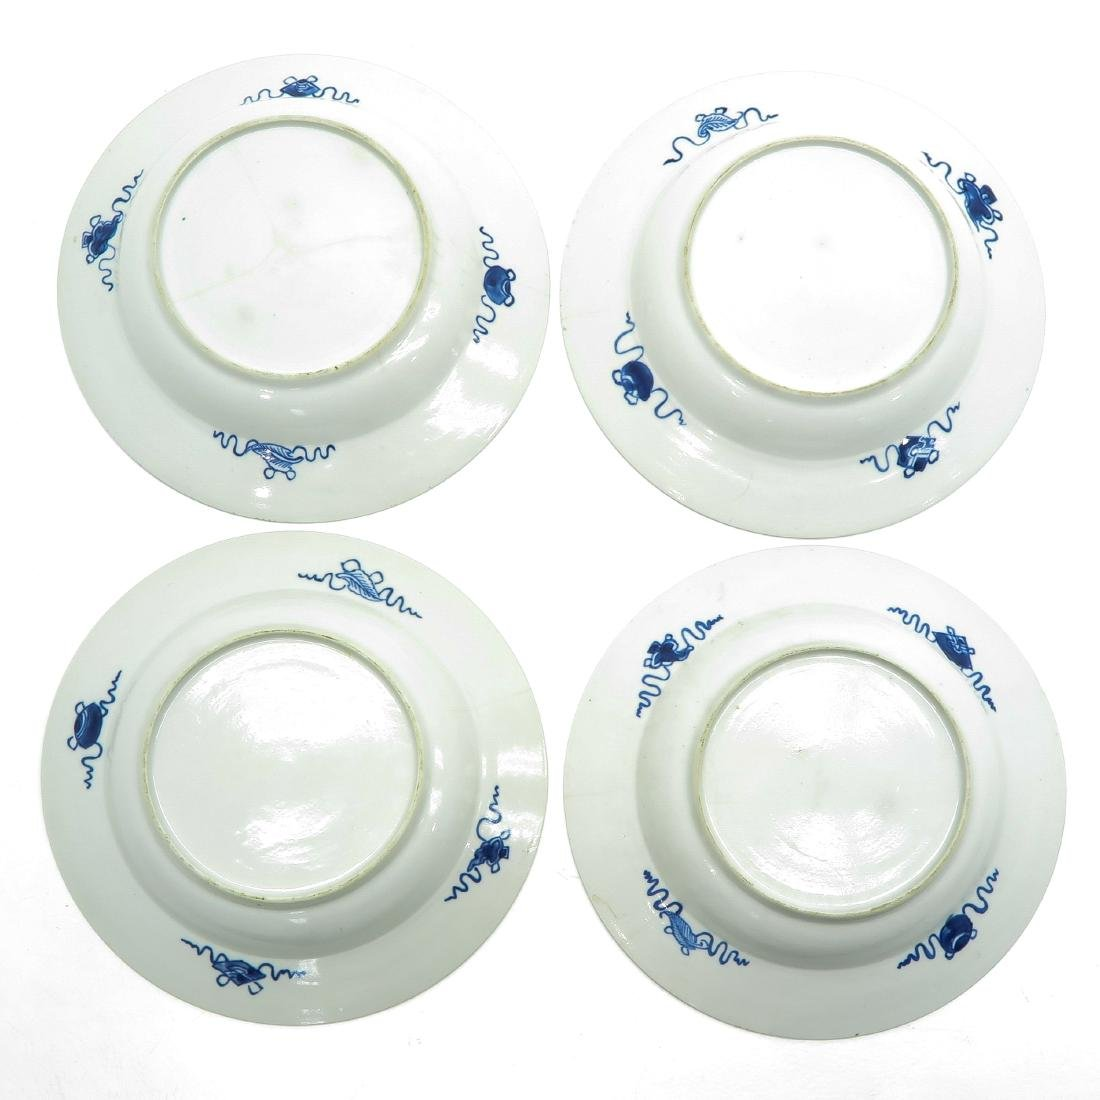 Lot of 4 Plates